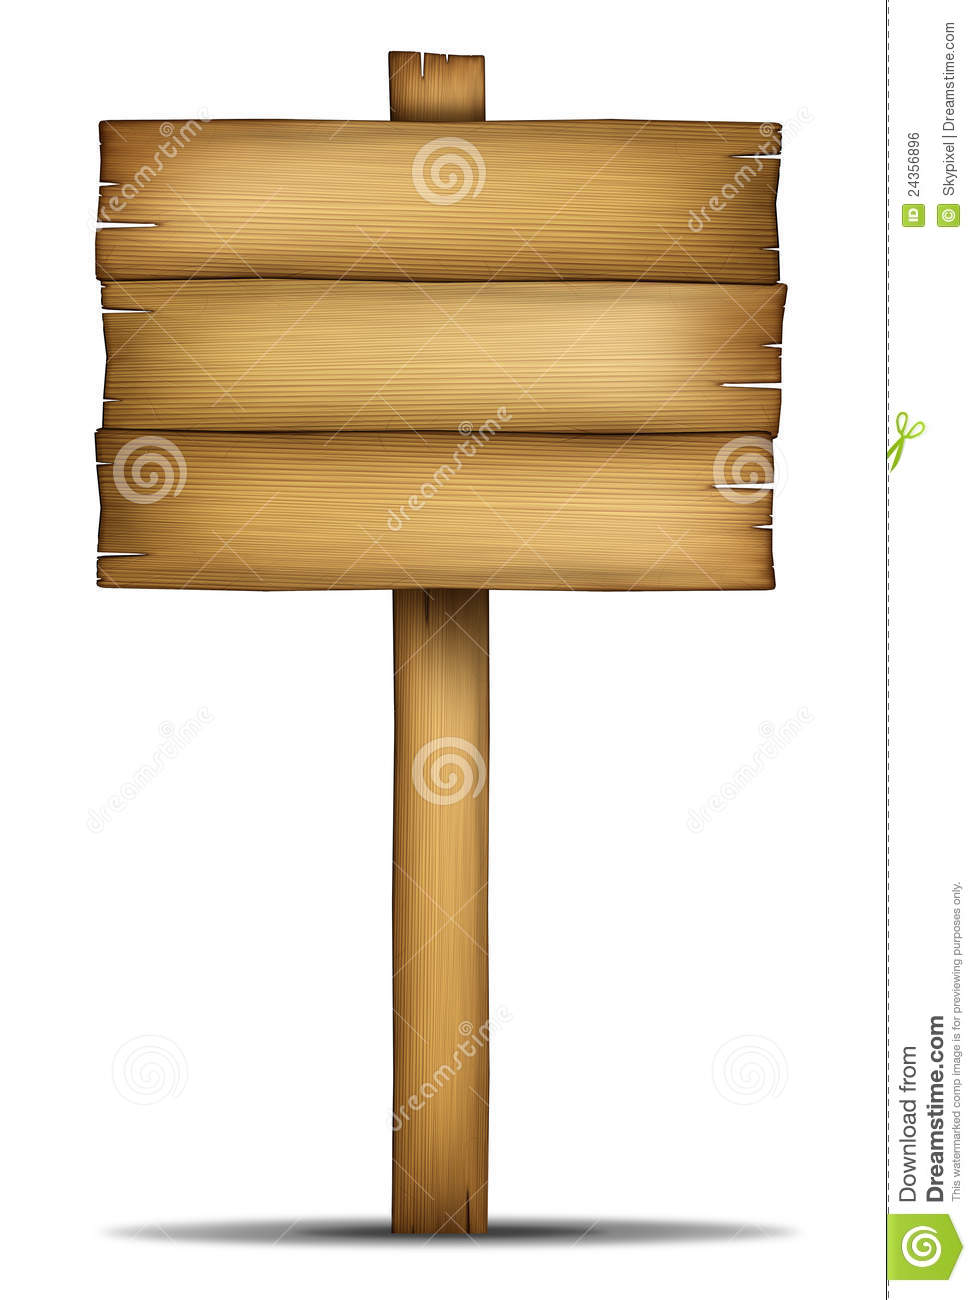 Wood Pole Clipart 20 Free Cliparts Download Images On